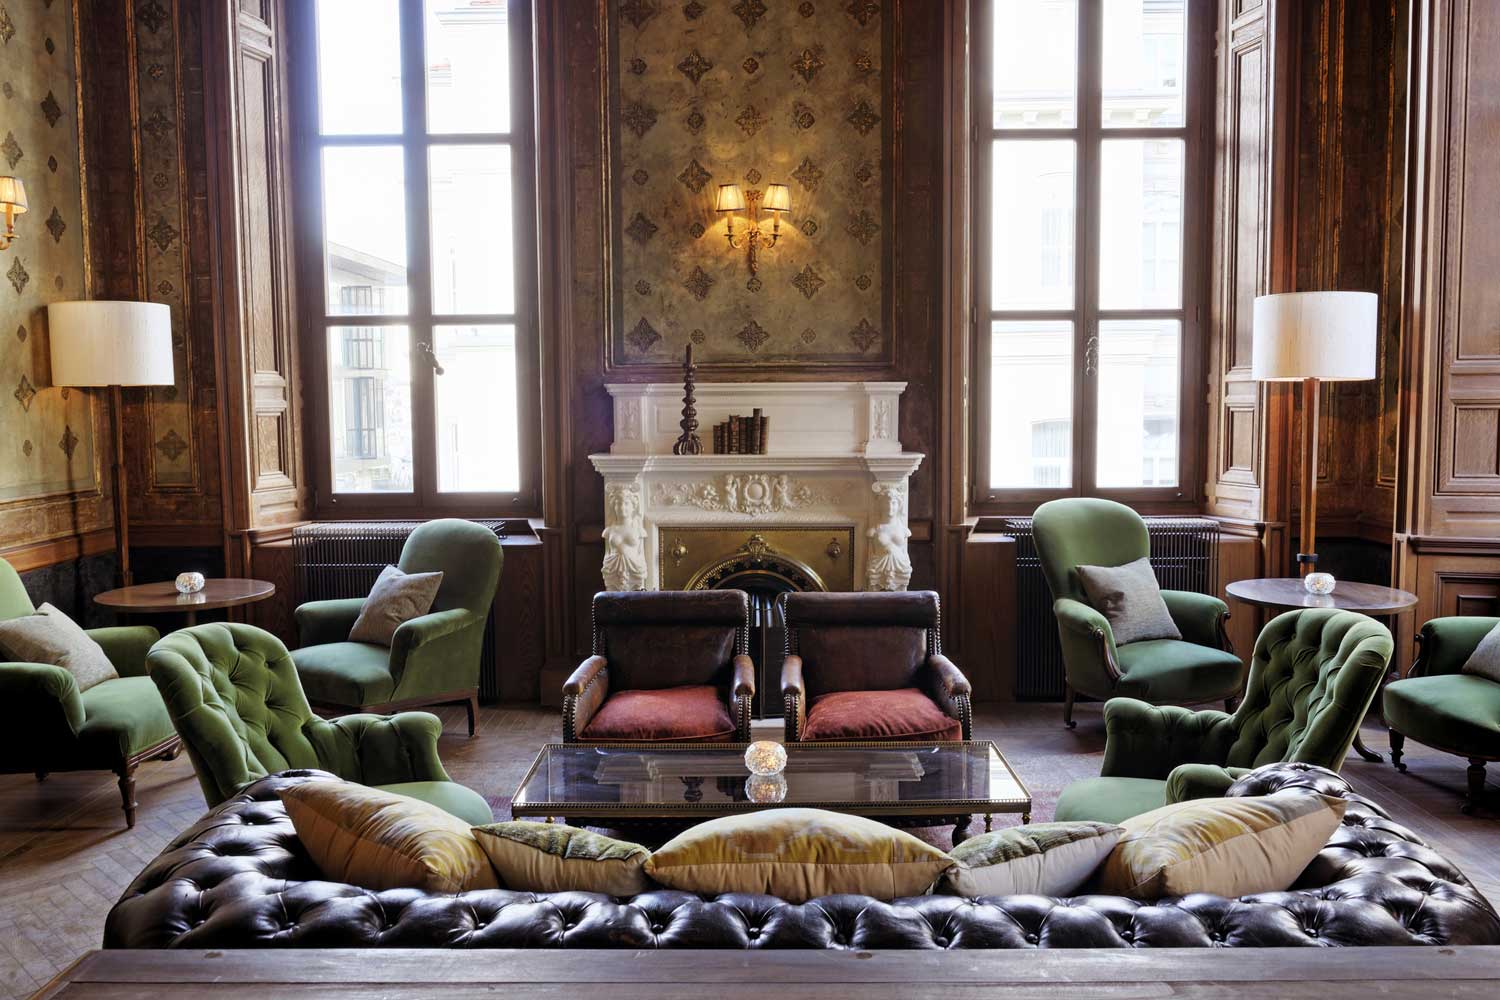 Tour of soho house s around the world yellowtrace for Decor hotel istanbul